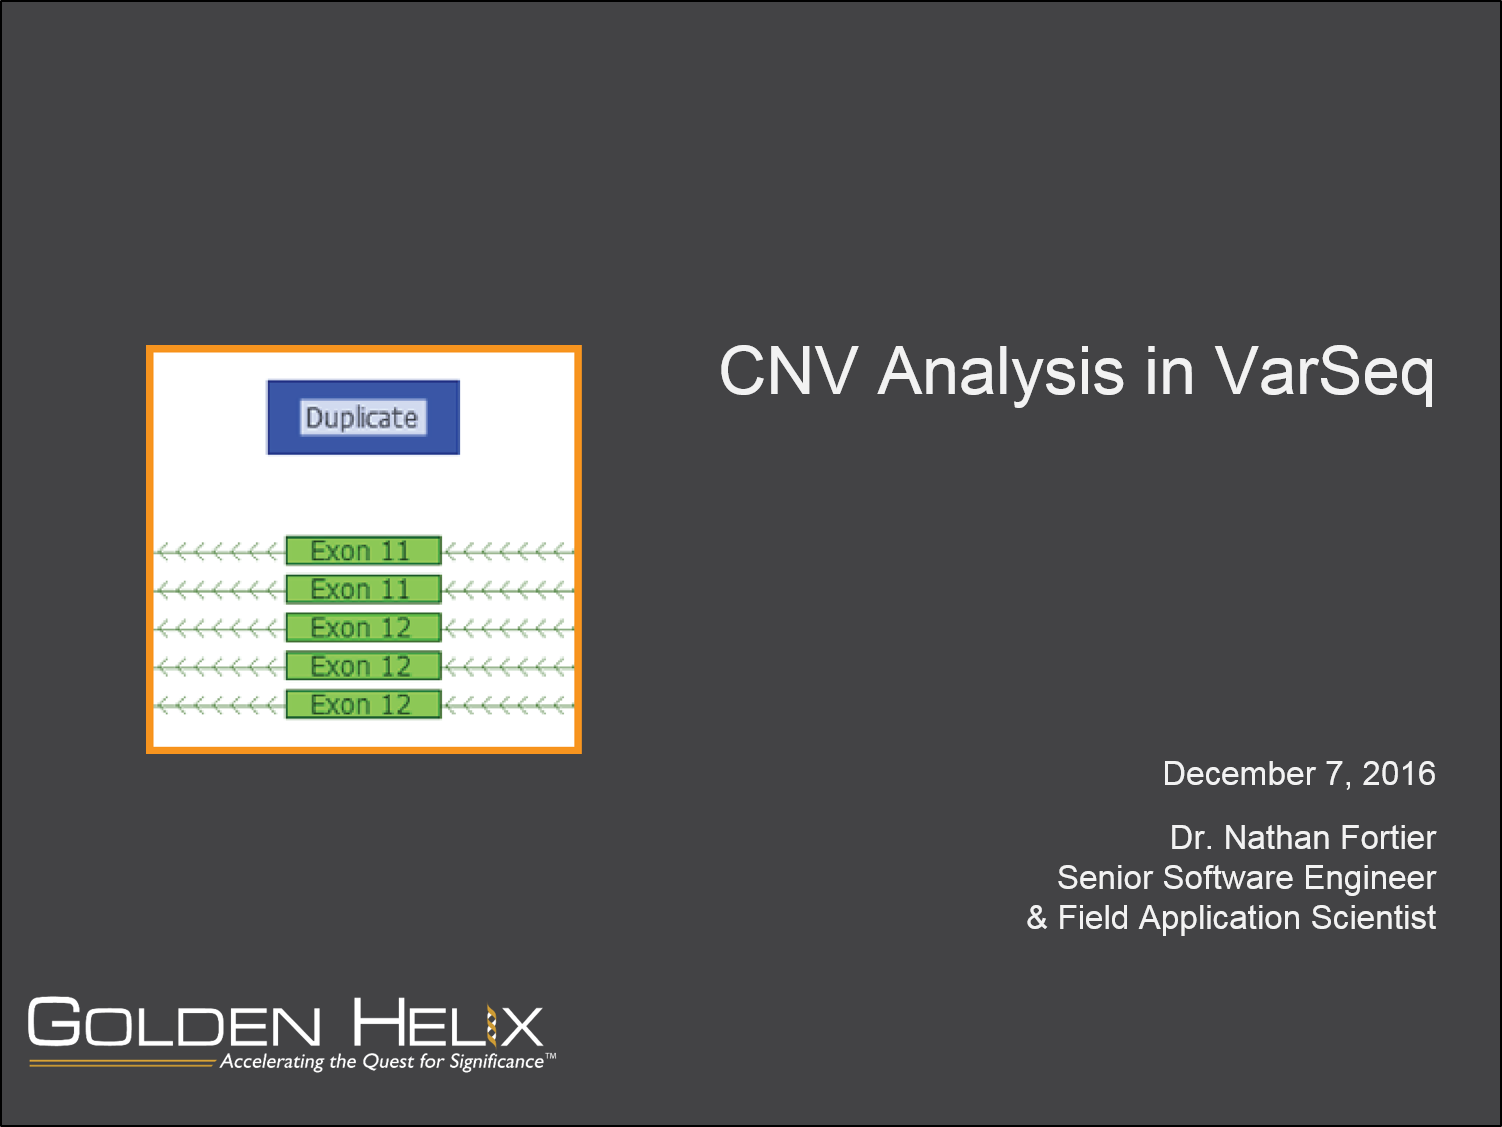 CNV Analysis in VarSeq